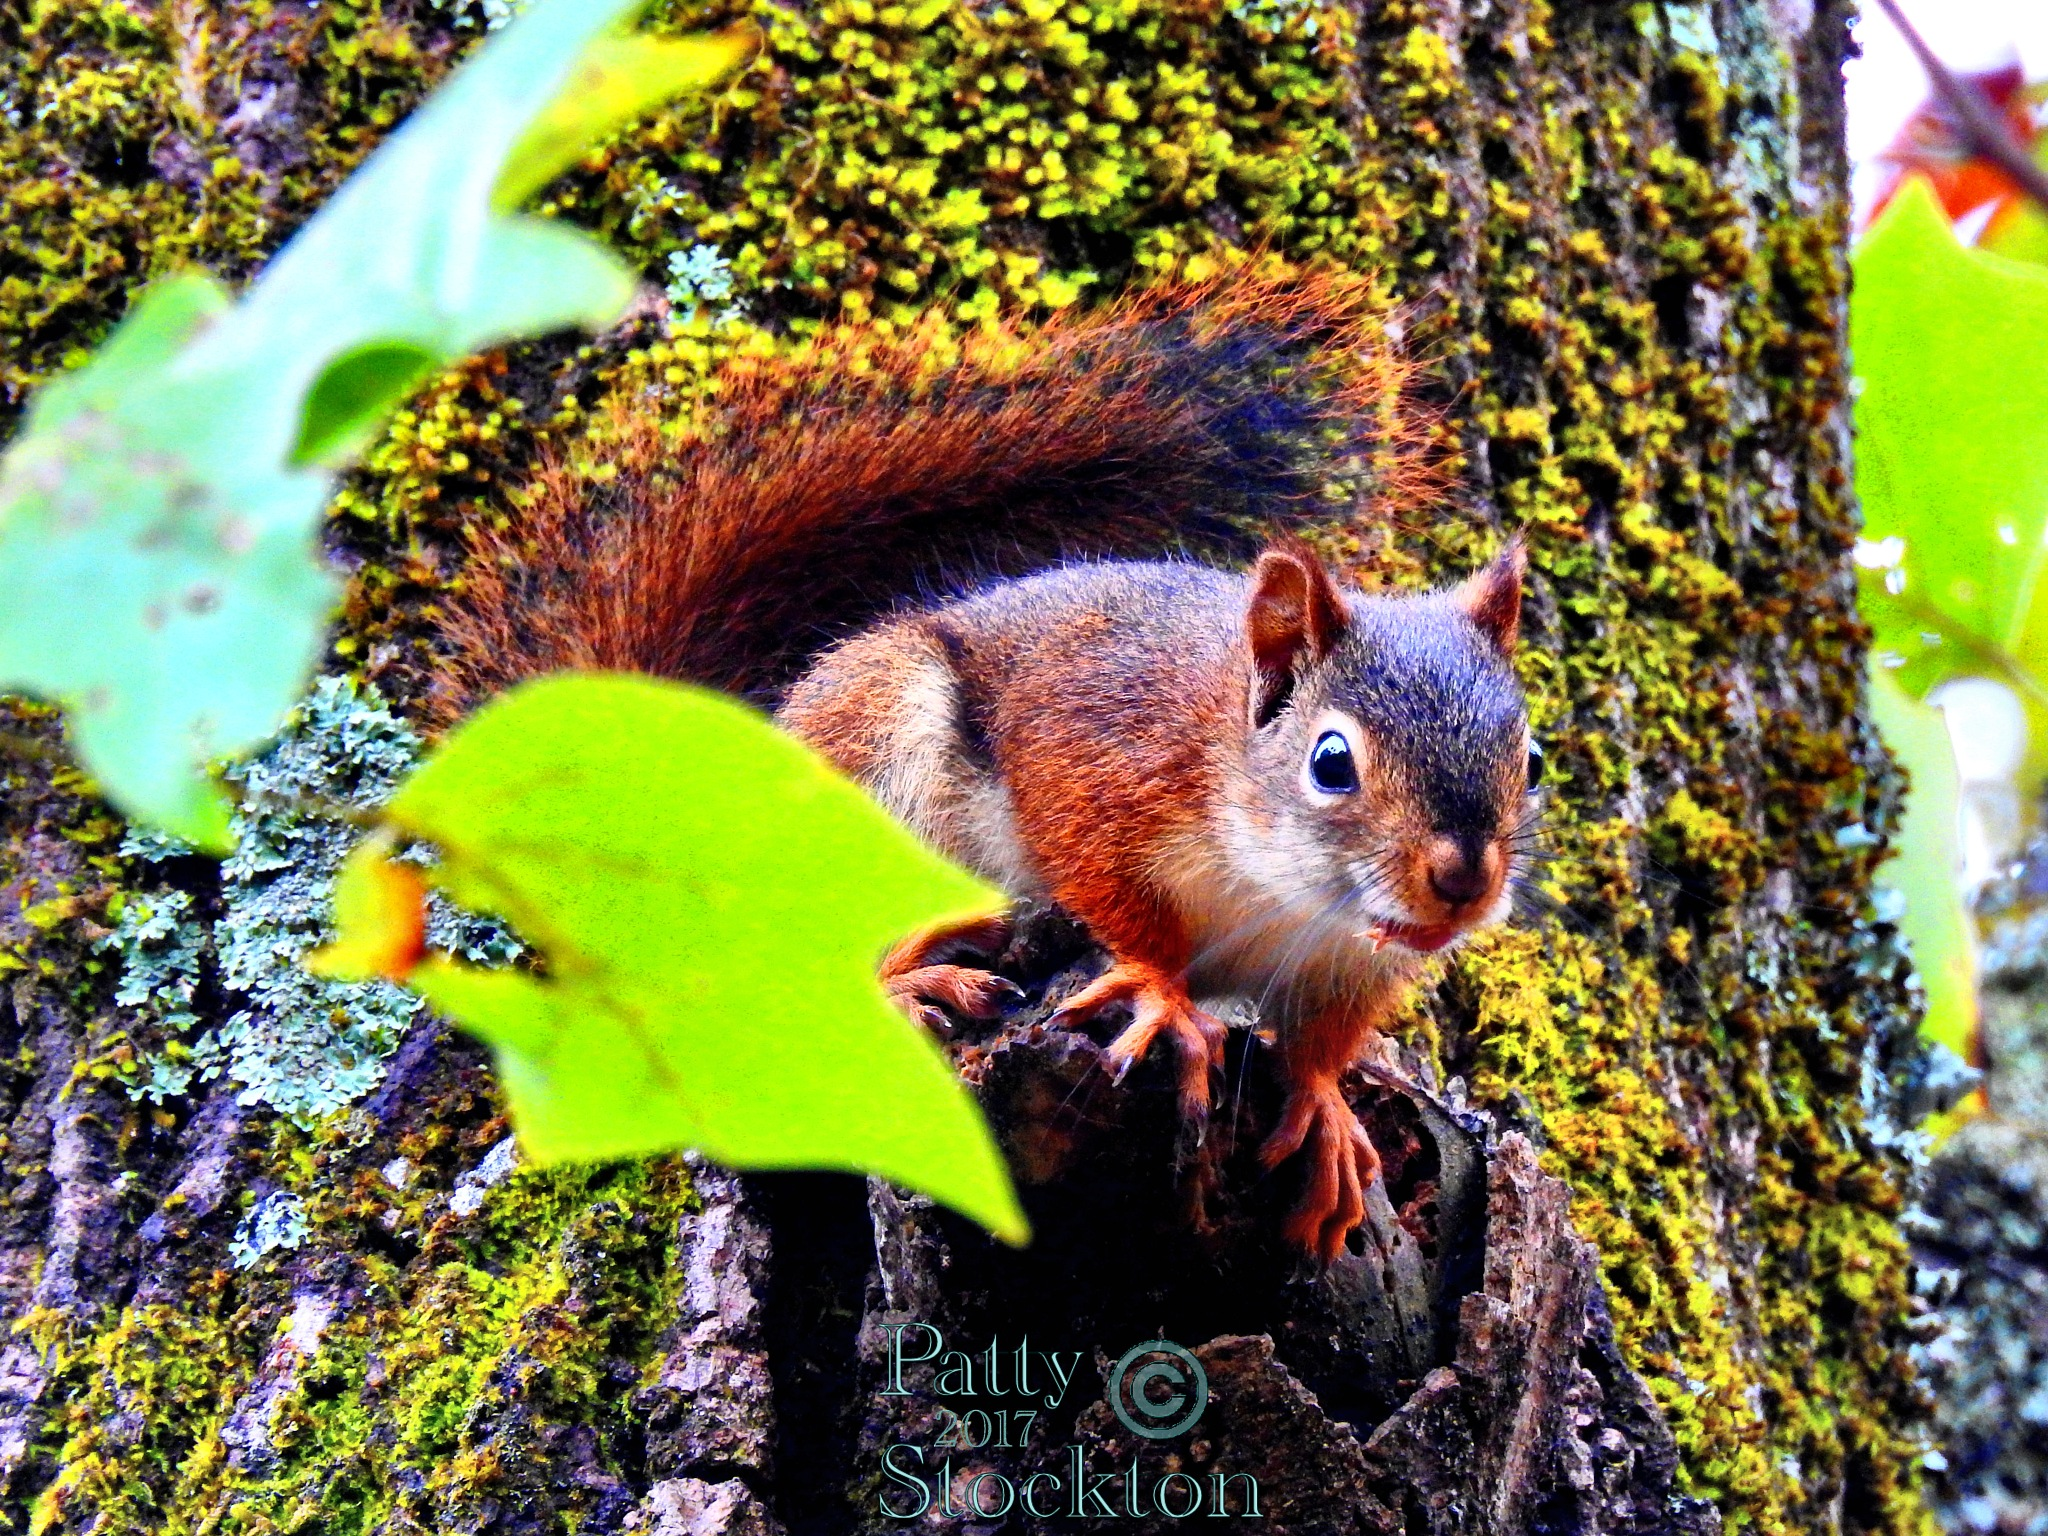 I See You! by Patty Stockton